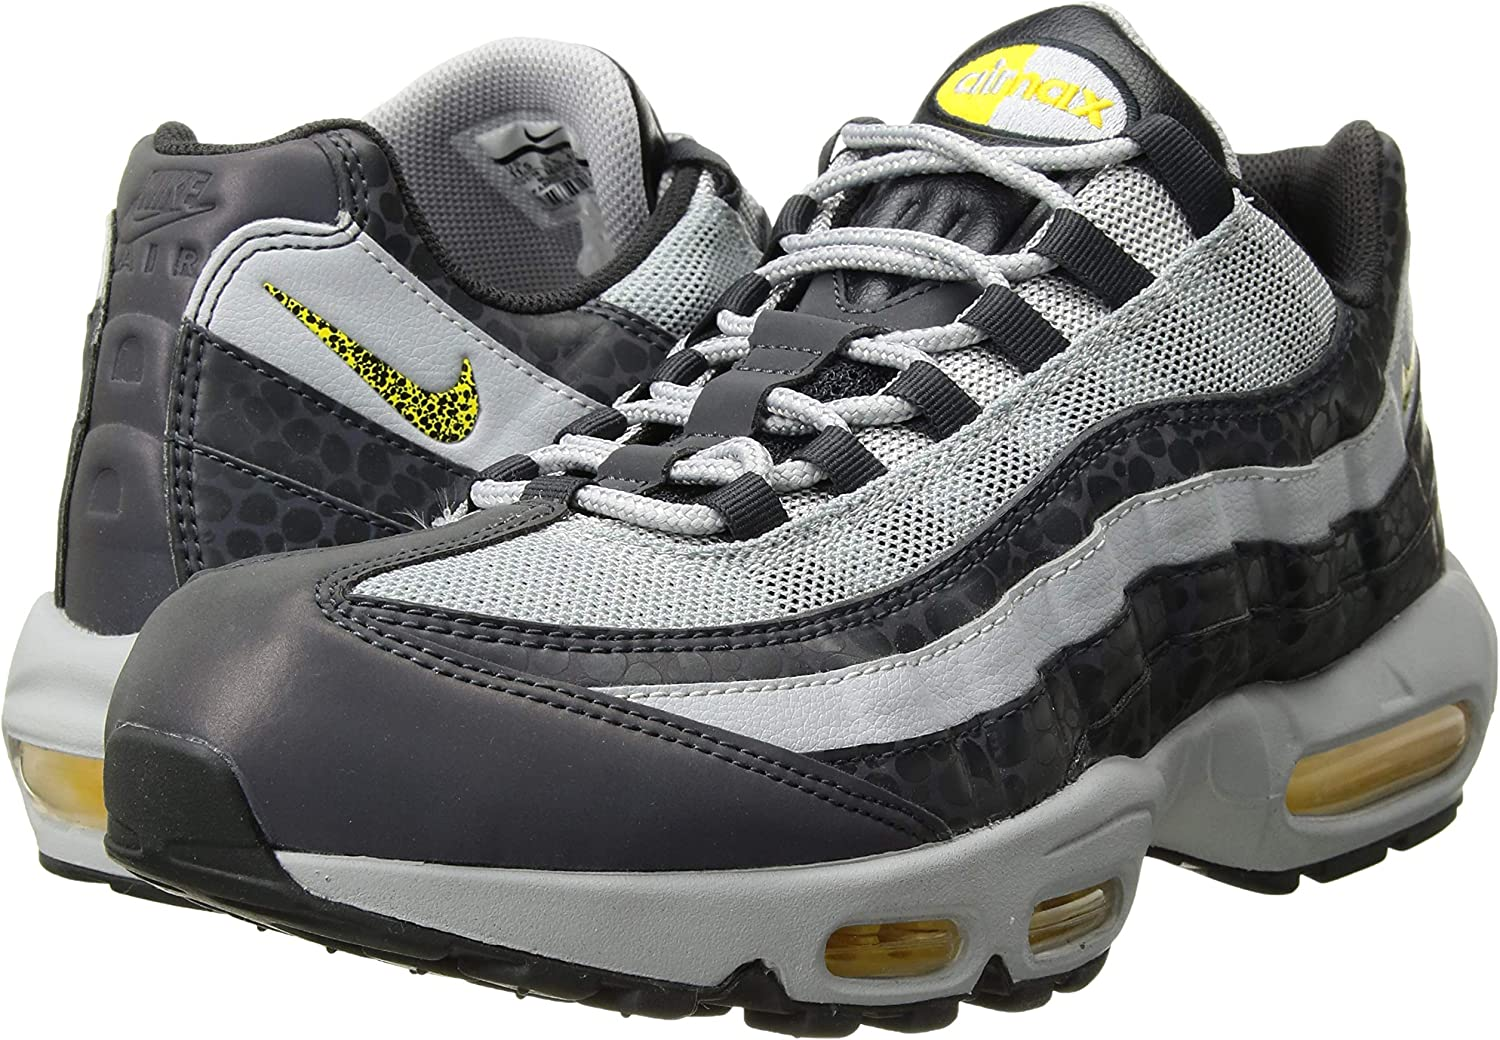 Nike Men's Air Max 95 Leather Cross Trainers Shoes: Amazon